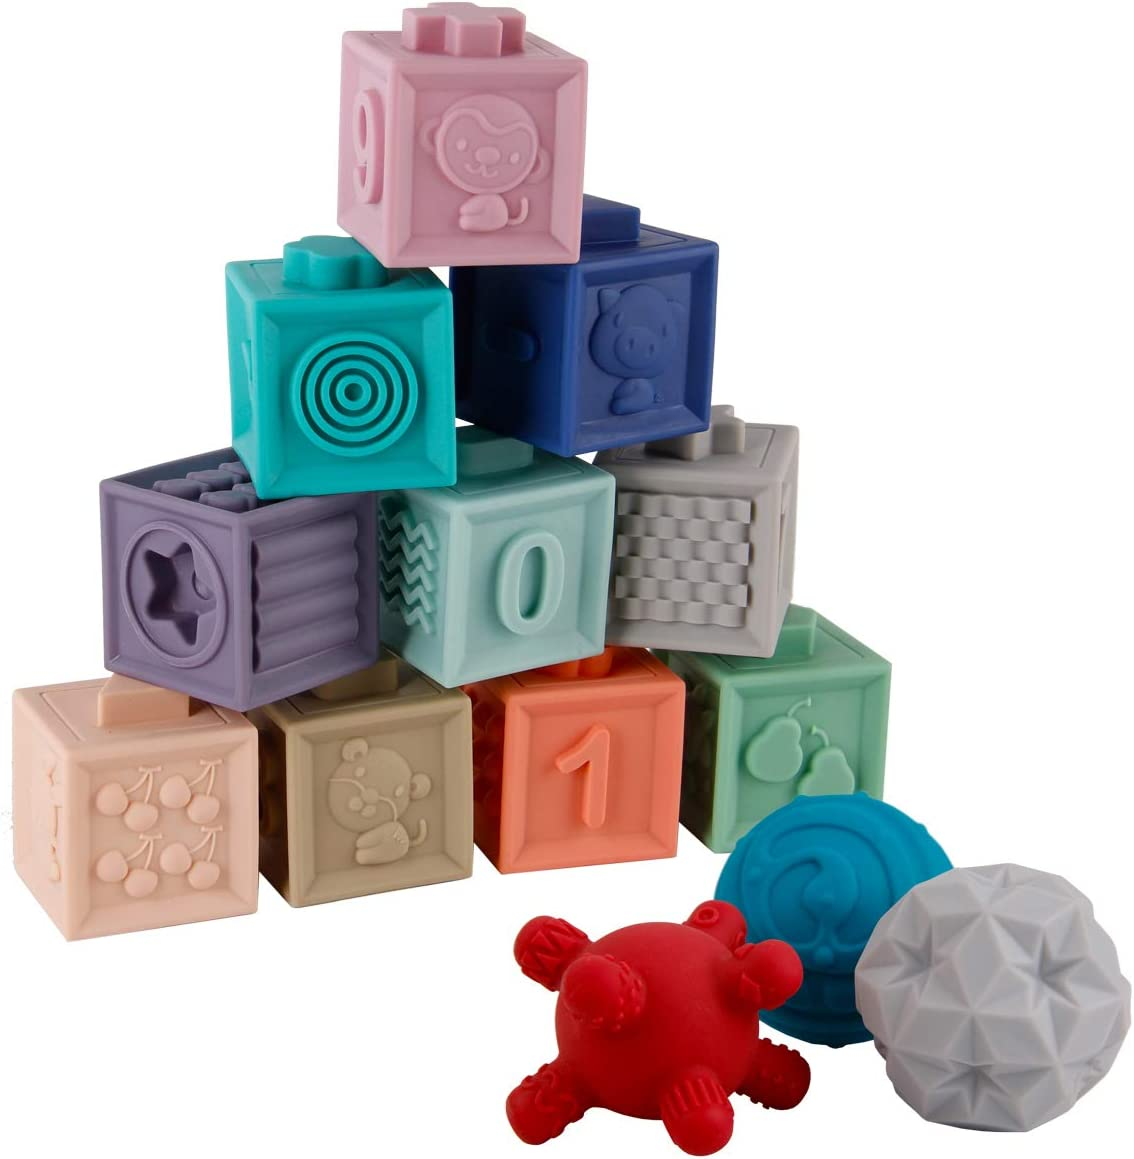 BOBXIN 15PCS Soft Building Blocks Baby Blocks Textured Sensory Ball Set Teething Chewing Toys Baby Bath Toys Squeeze Play with Numbers, Shapes, Animals, Fruit and Textures Toy for 8 Months Toddlers